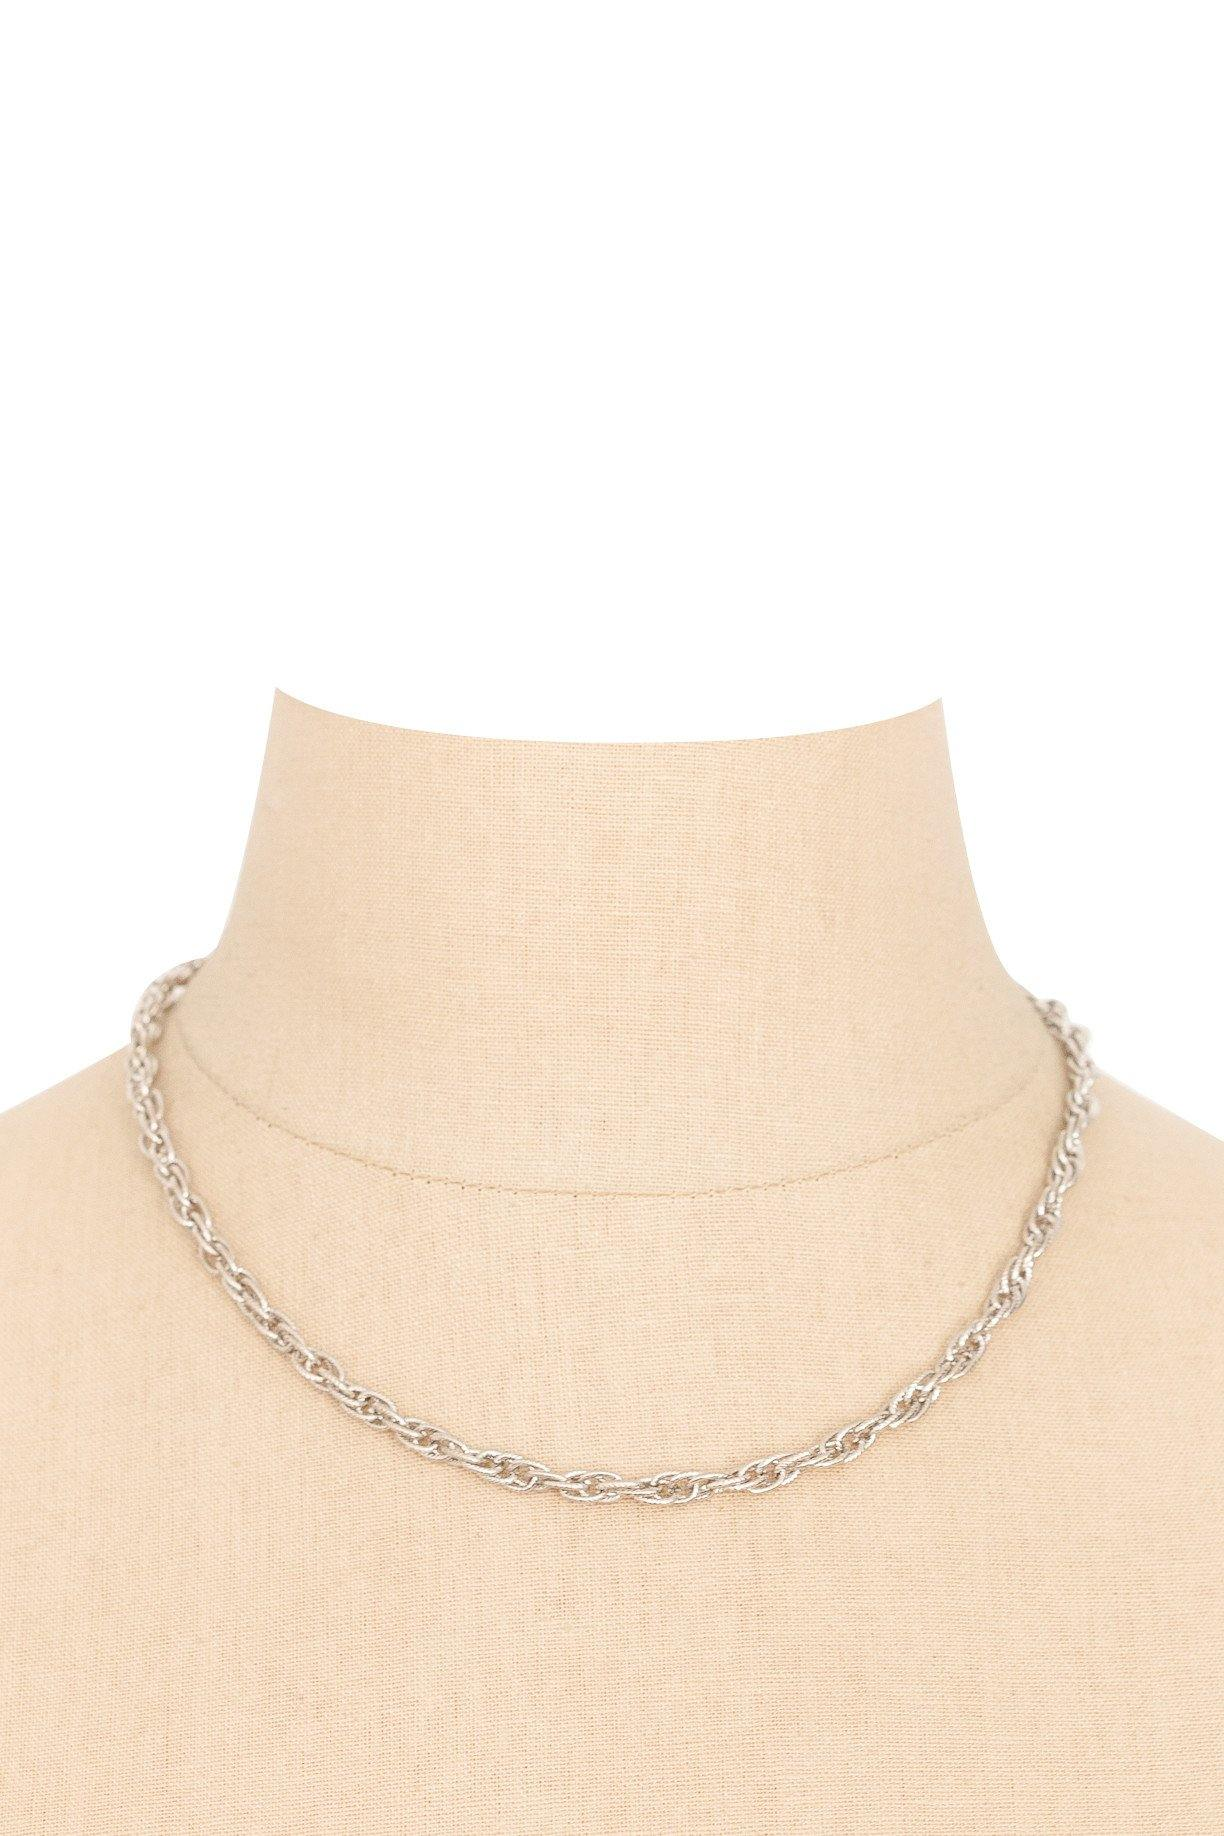 70's__Vintage__Dainty Silver Necklace